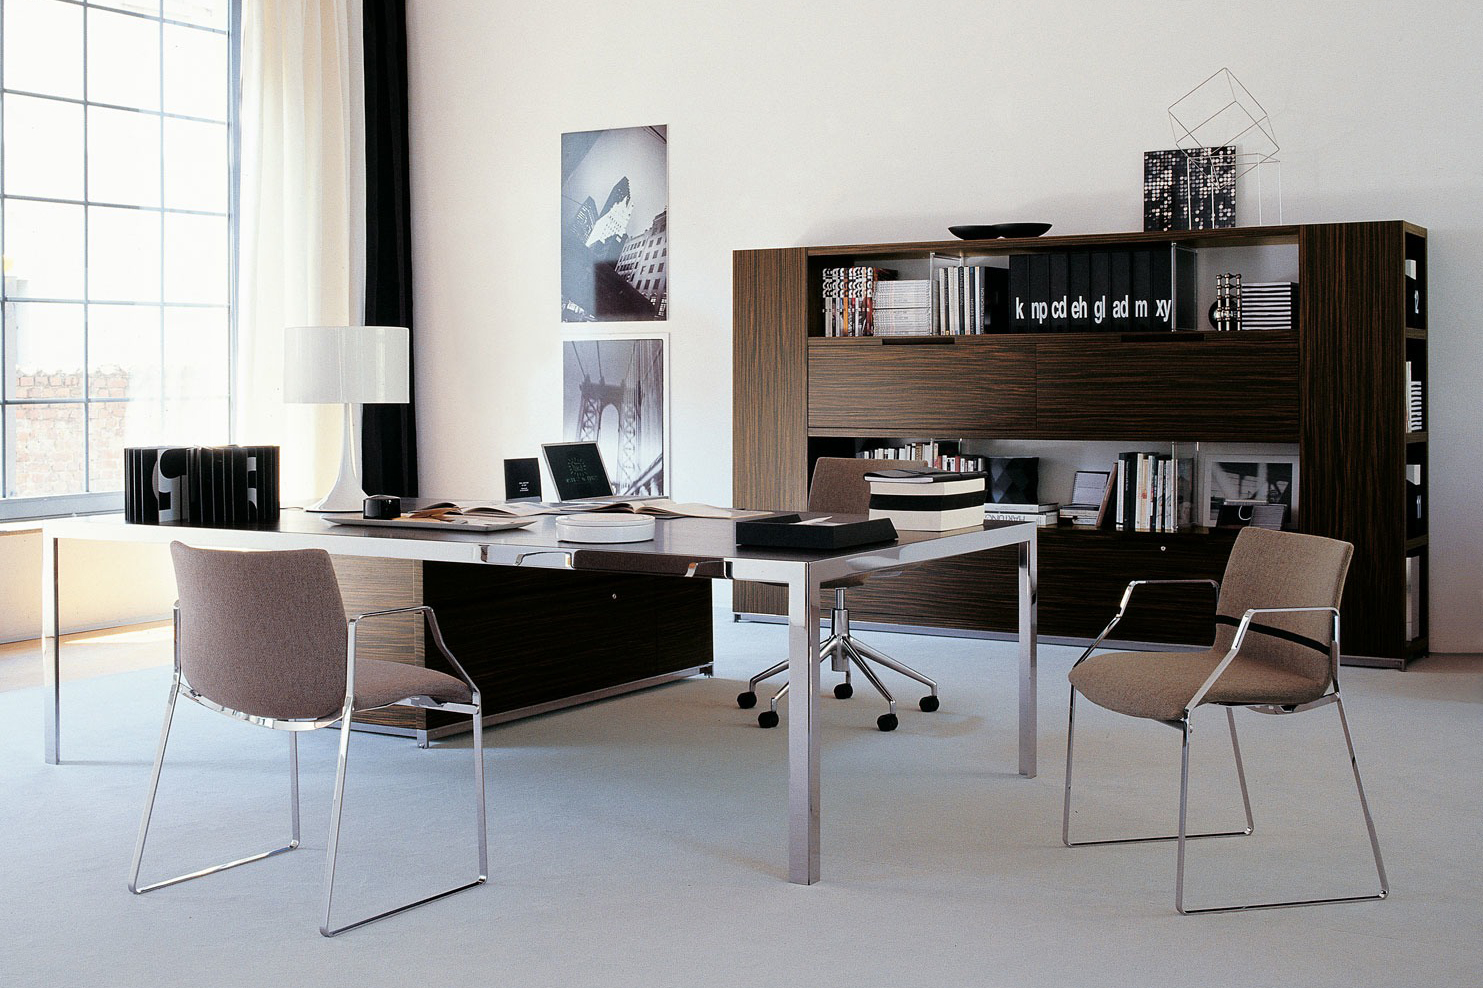 office tables and chairs images hot pink salon swc furniture stamford waterside design district italia desk jpg